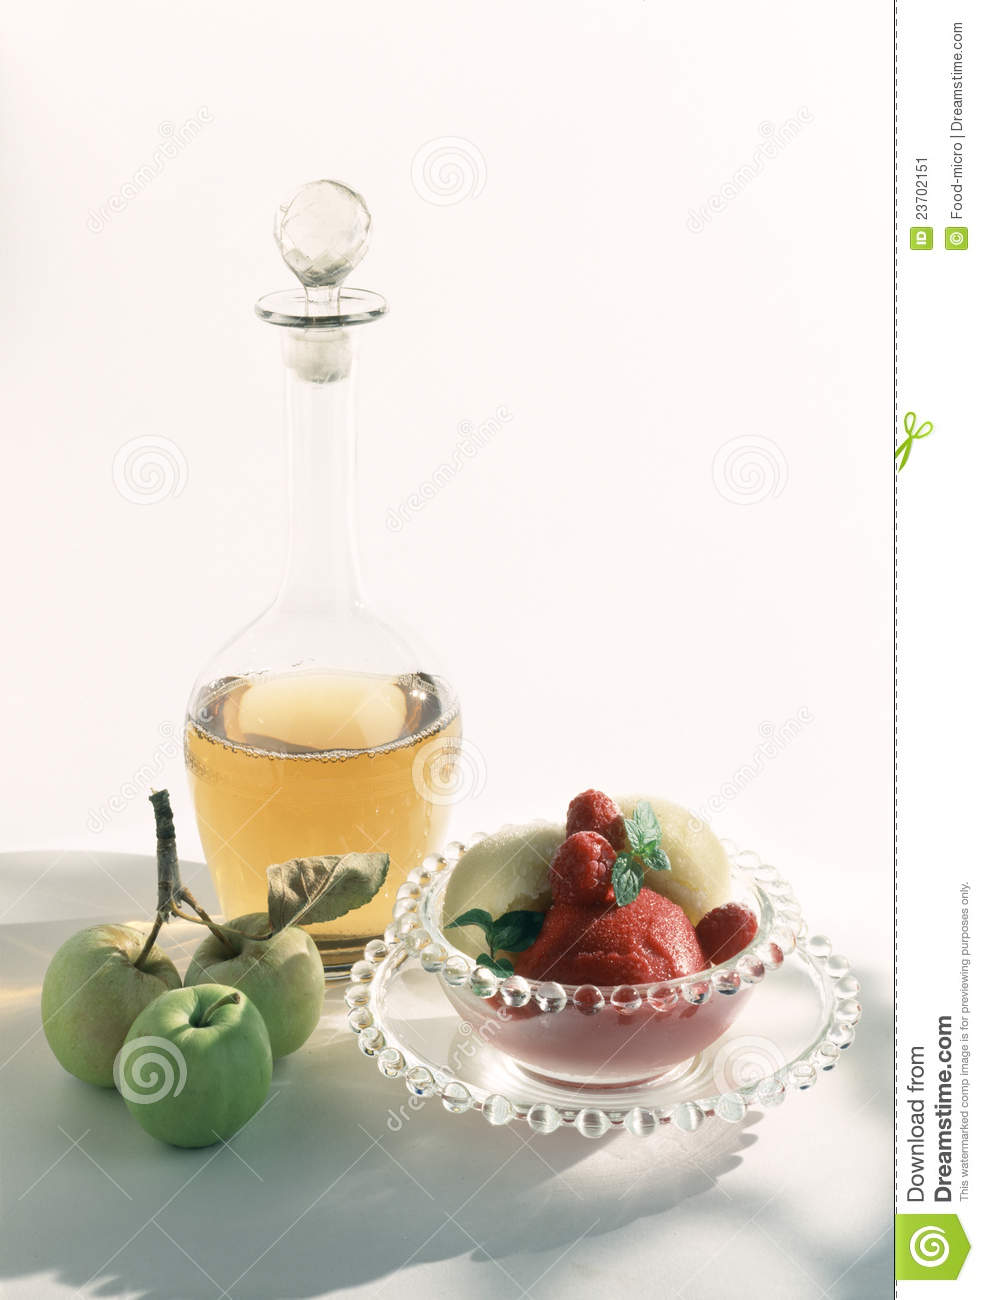 Raspberry And Peach Sorbet With Peppery White Wine Stock Image - Image ...